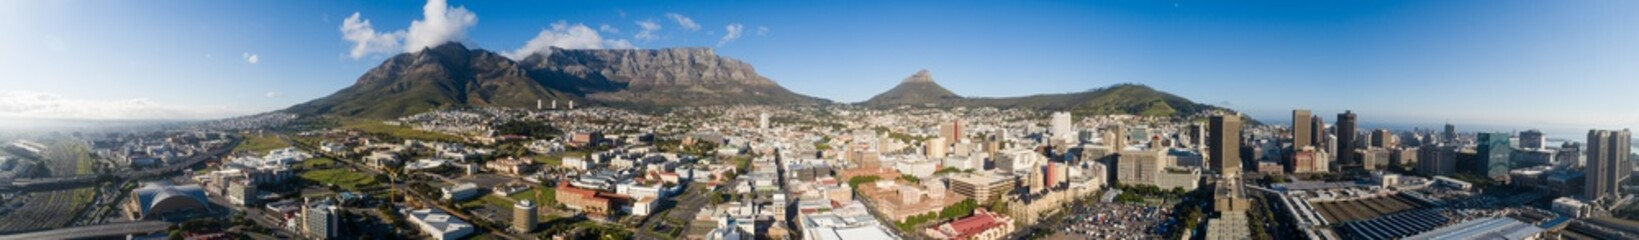 Panoramic aerial view over the city of Cape Town in South Africa Wall mural